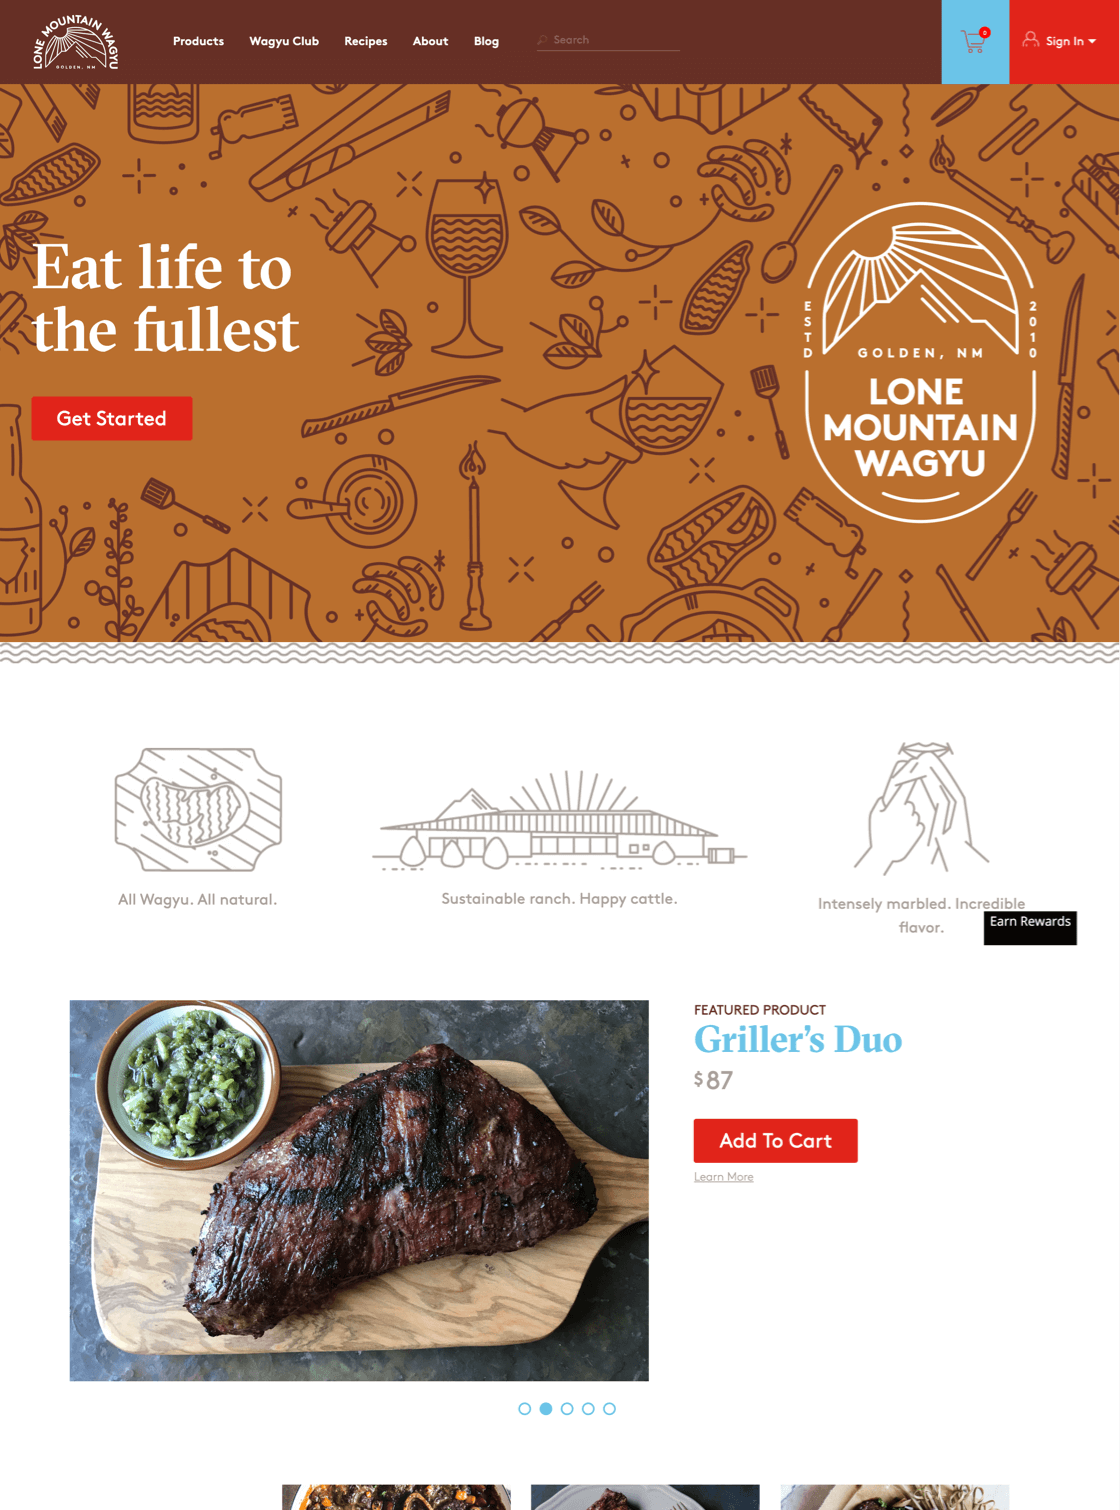 Lone Mountain Wagyu website on desktop